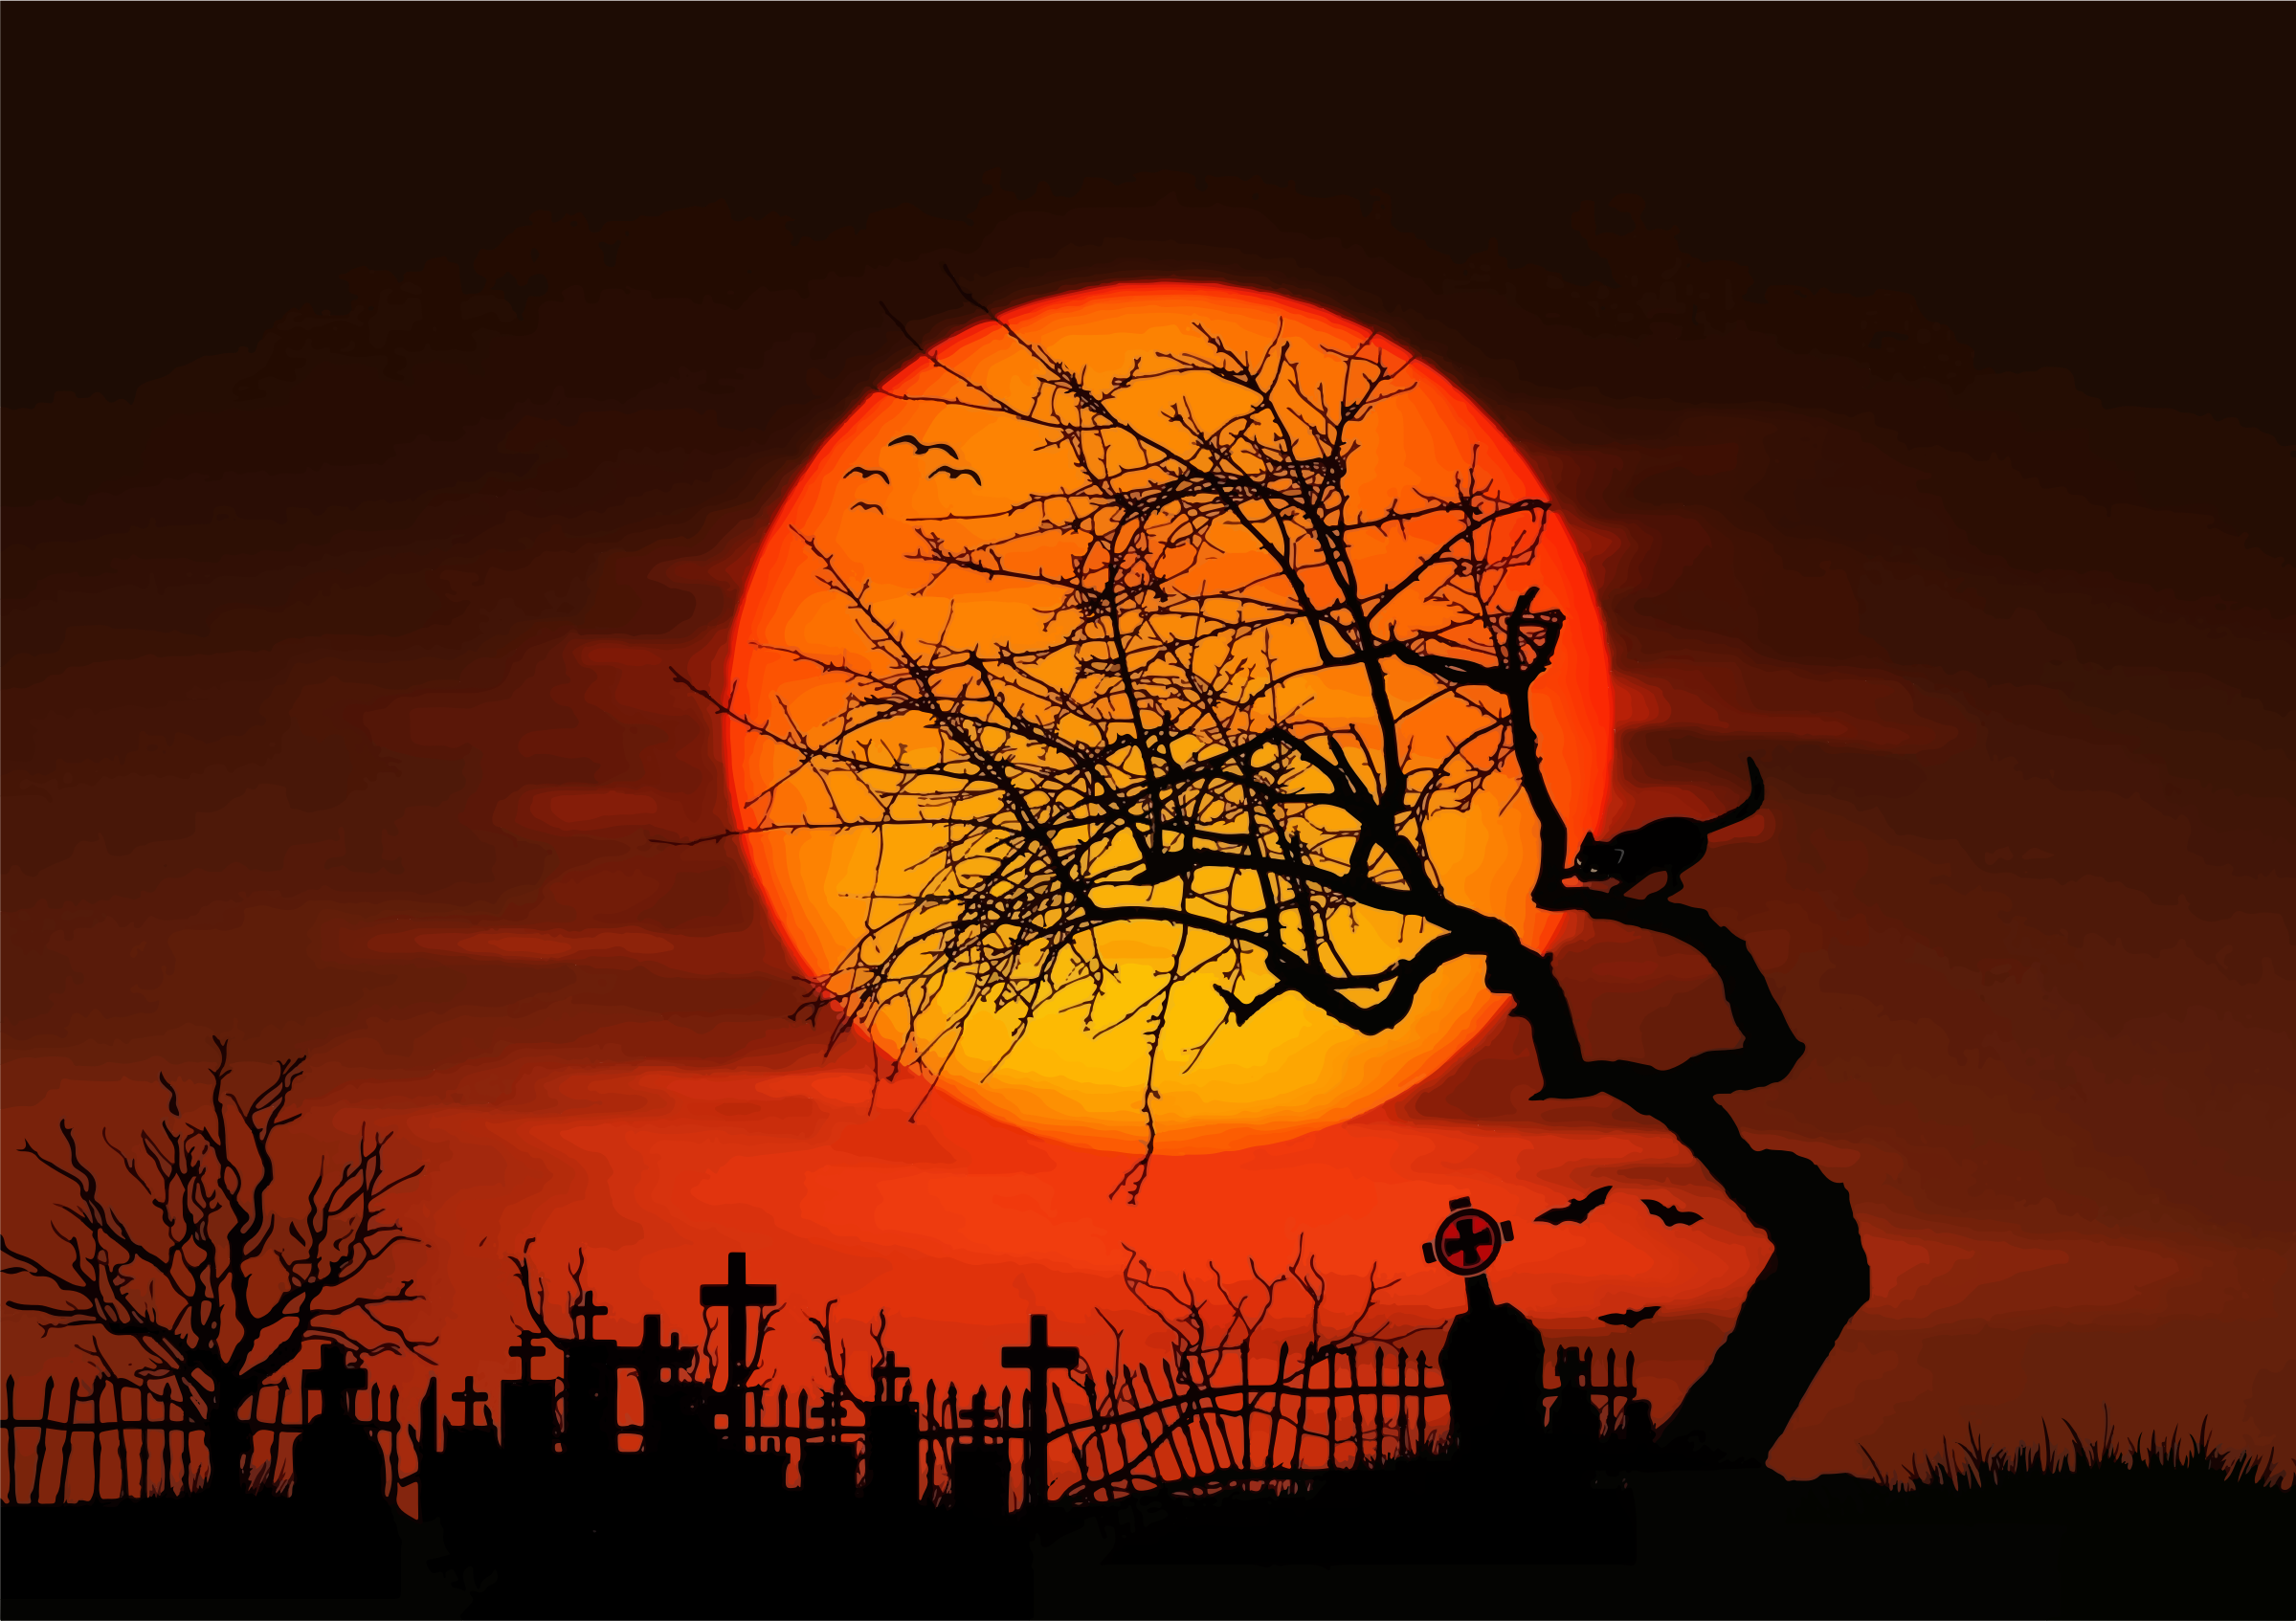 Midnight Graveyard Silhouette by GDJ